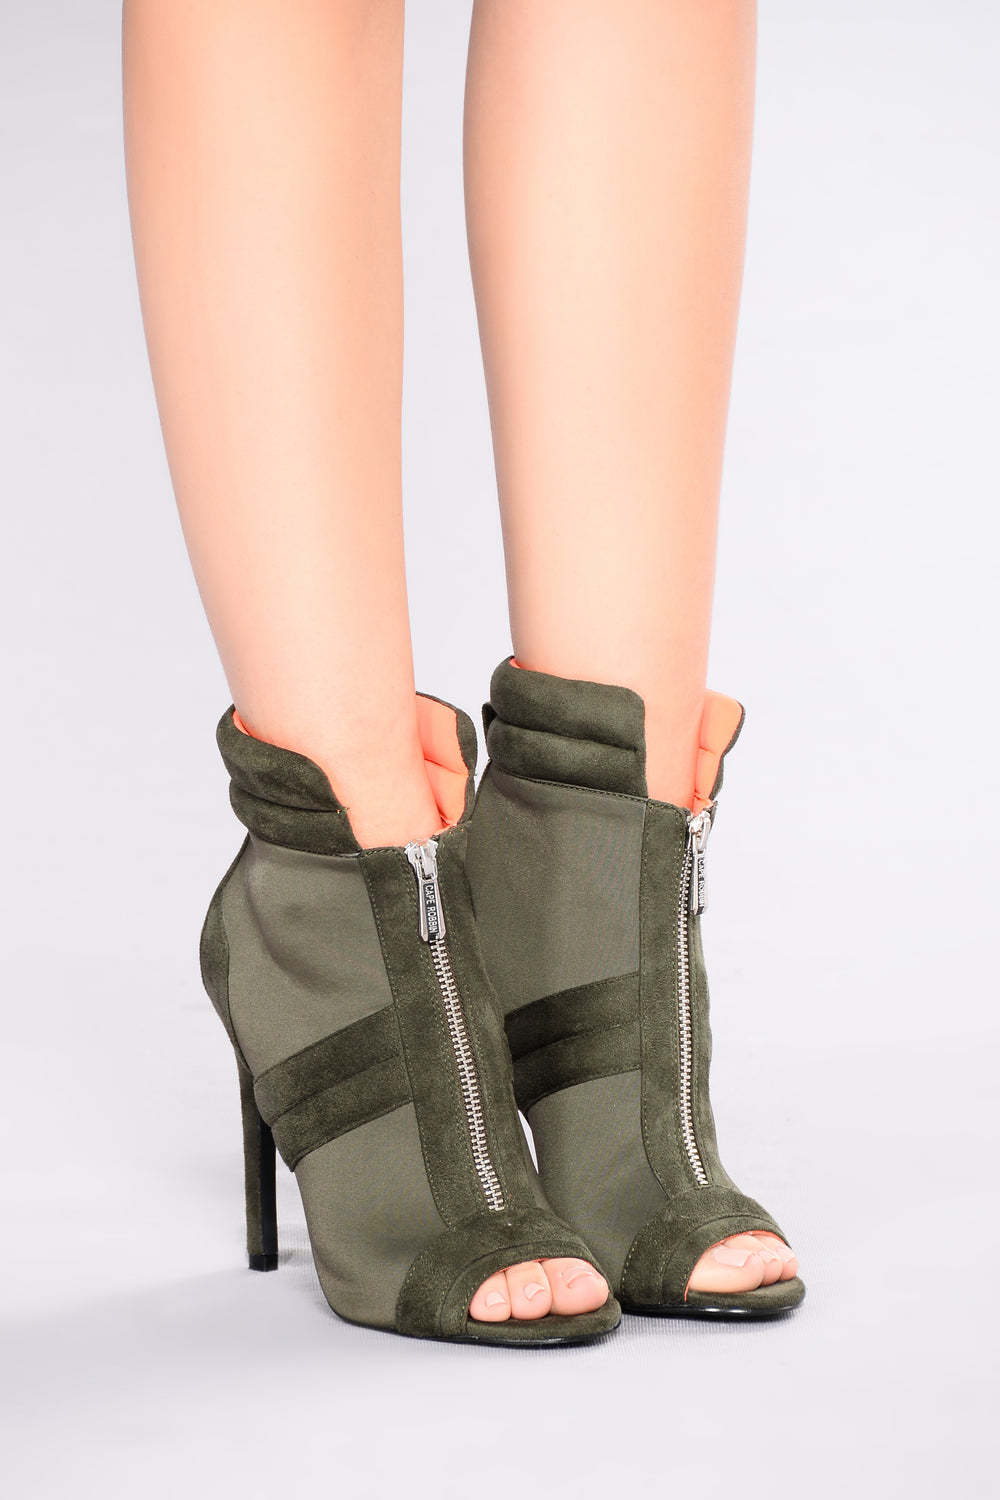 I Could Be Prosueded Bootie - Olive